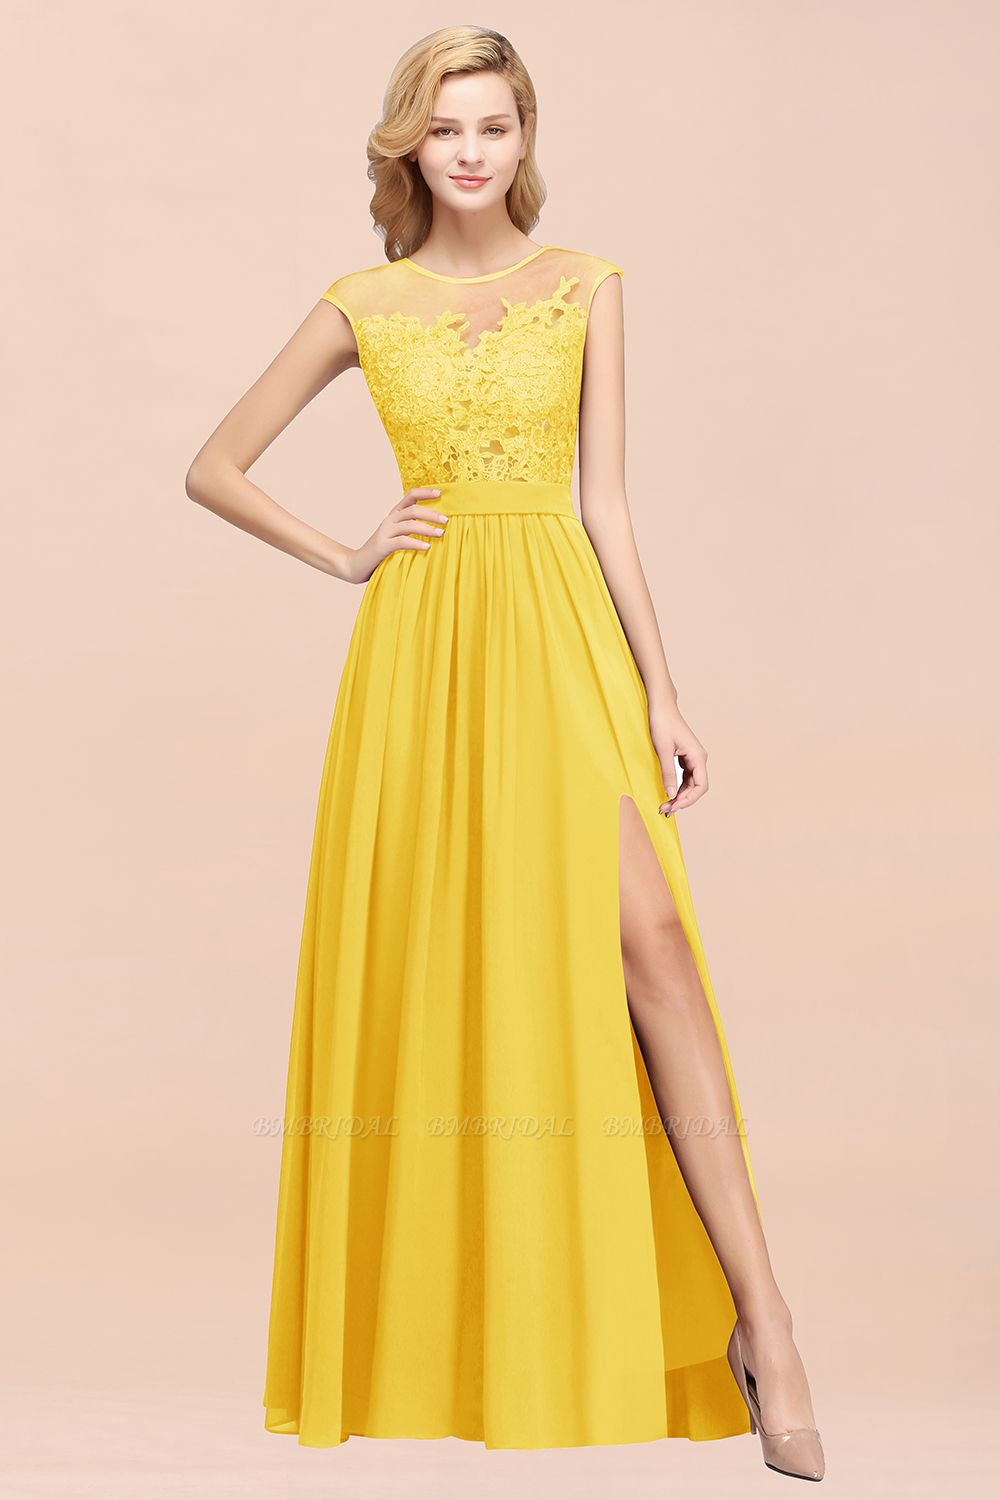 Affordable Scoop Lace Appliques Yellow Bridesmaid Dresses with Slit